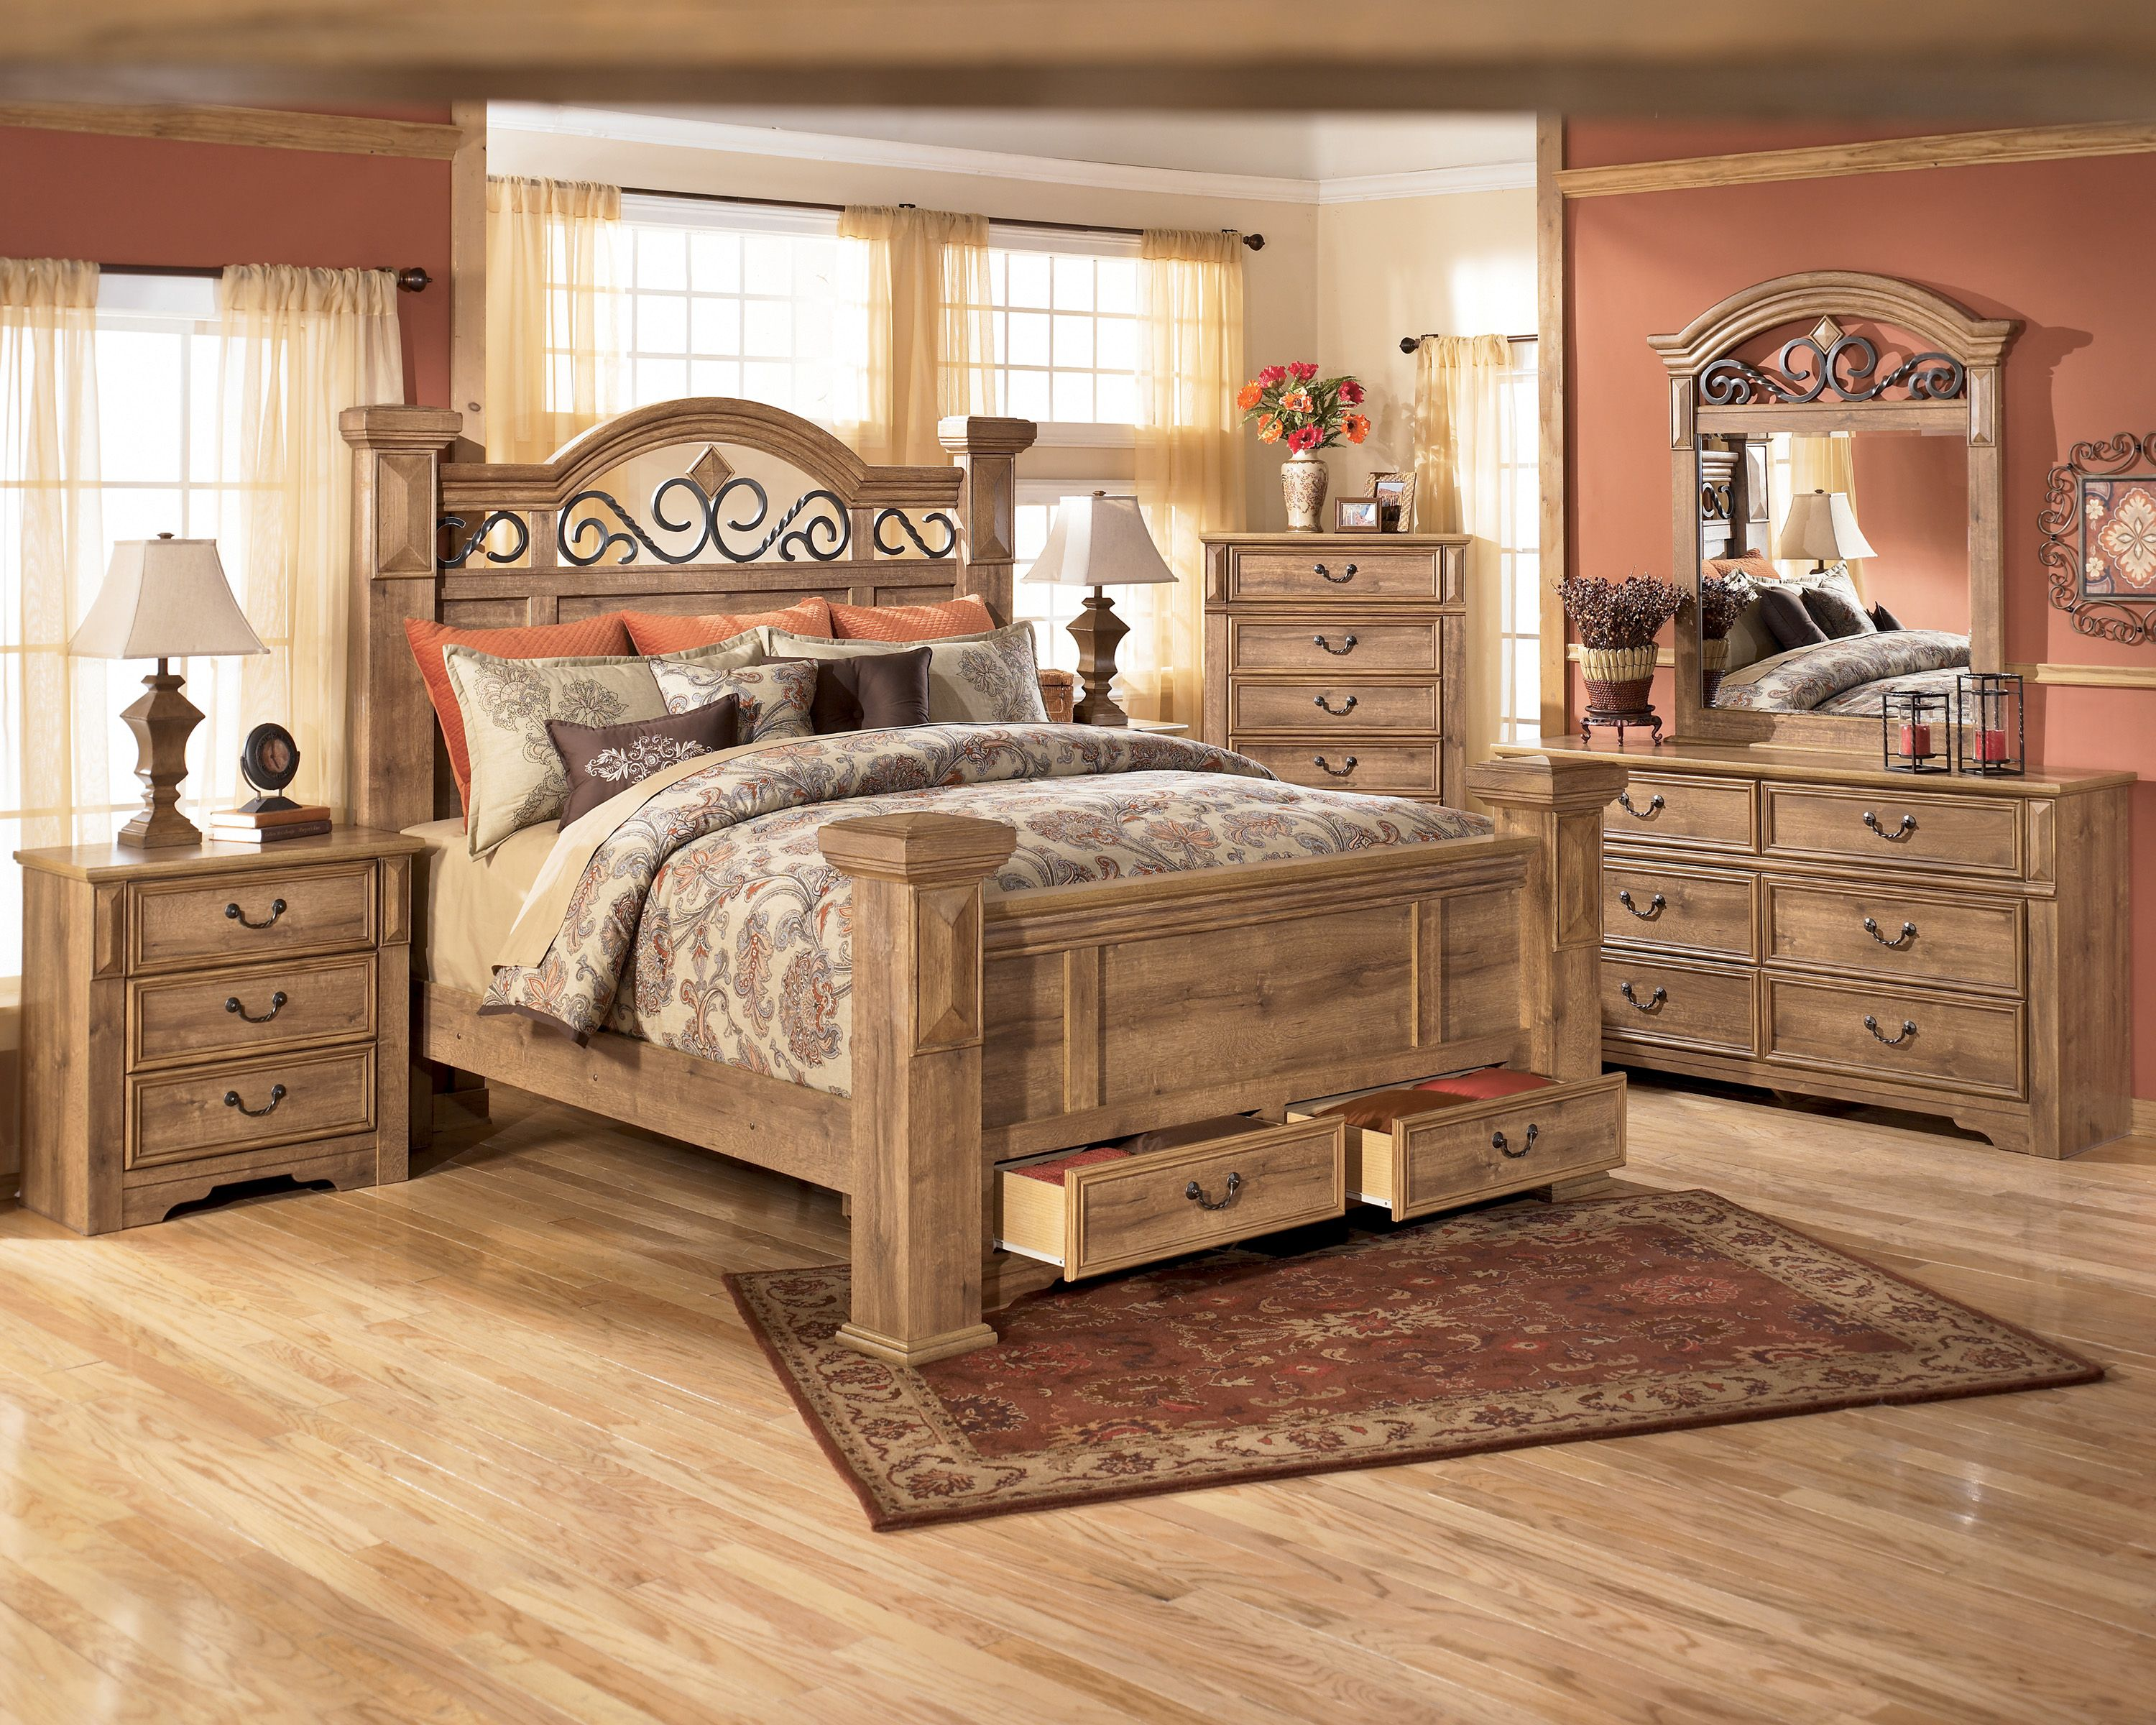 Best King Size Bed Set Rosalinda | King Beds | Pinterest | King size ...